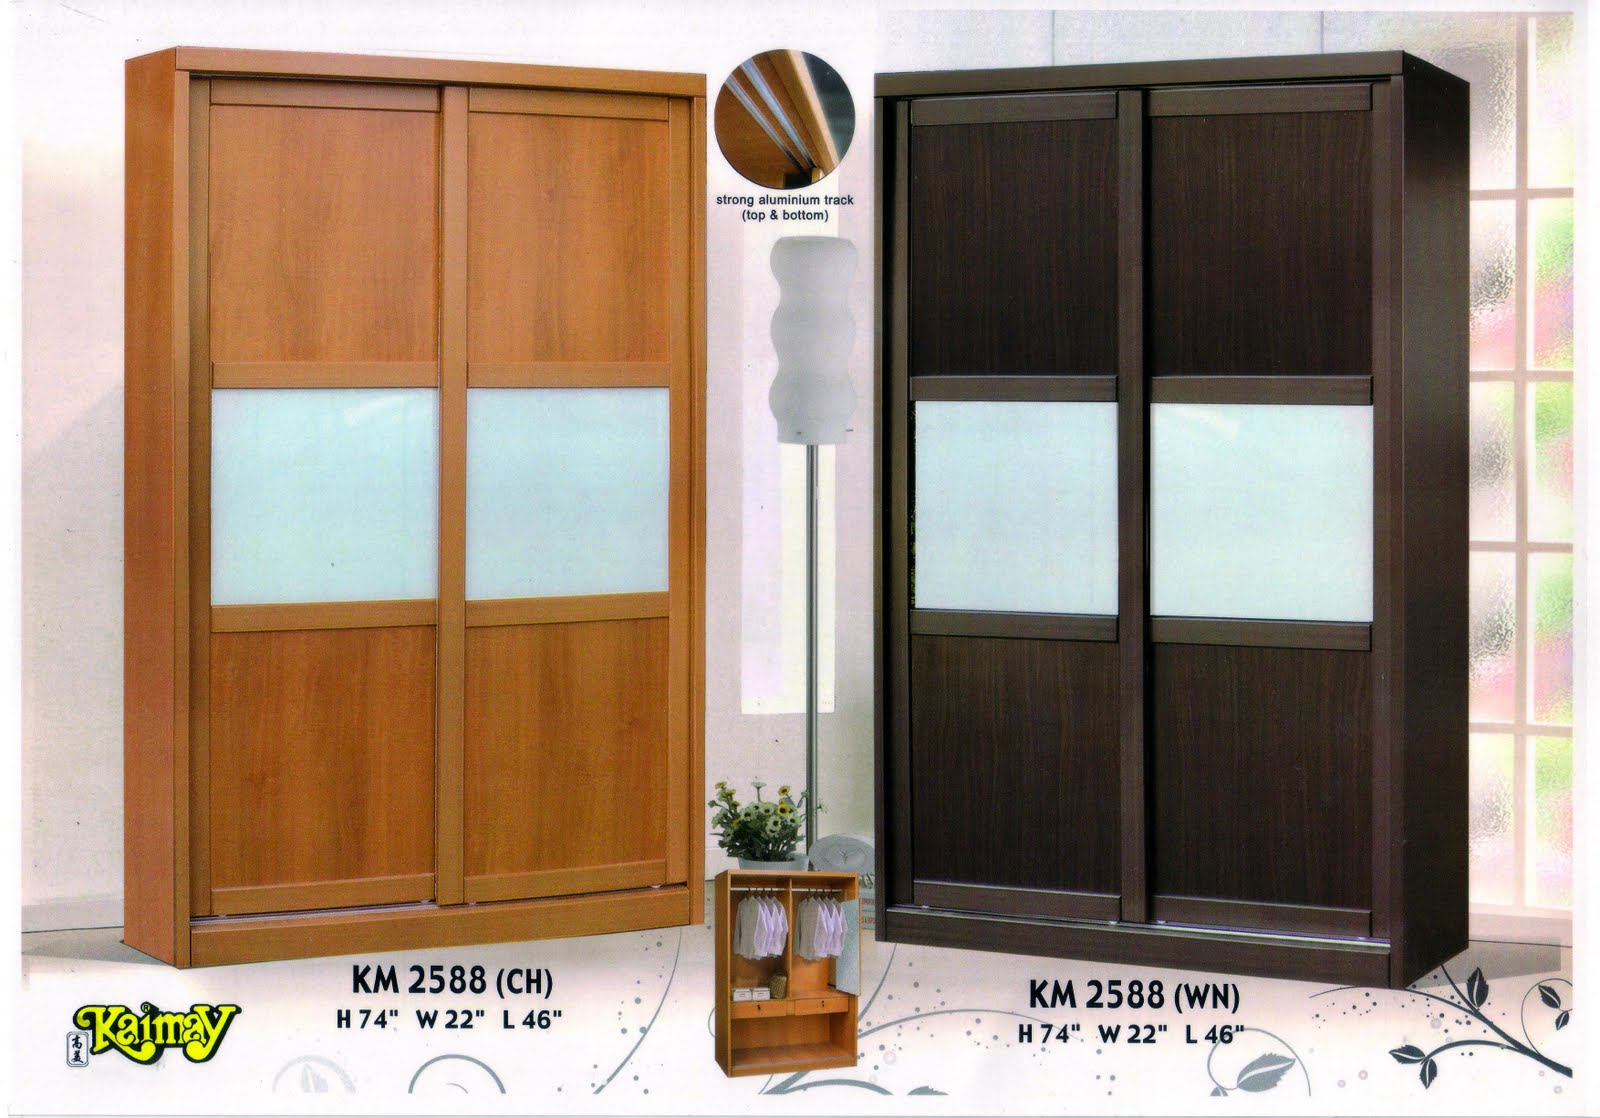 Remarkable Sliding Wardrobe Doors 1600 x 1118 · 198 kB · jpeg